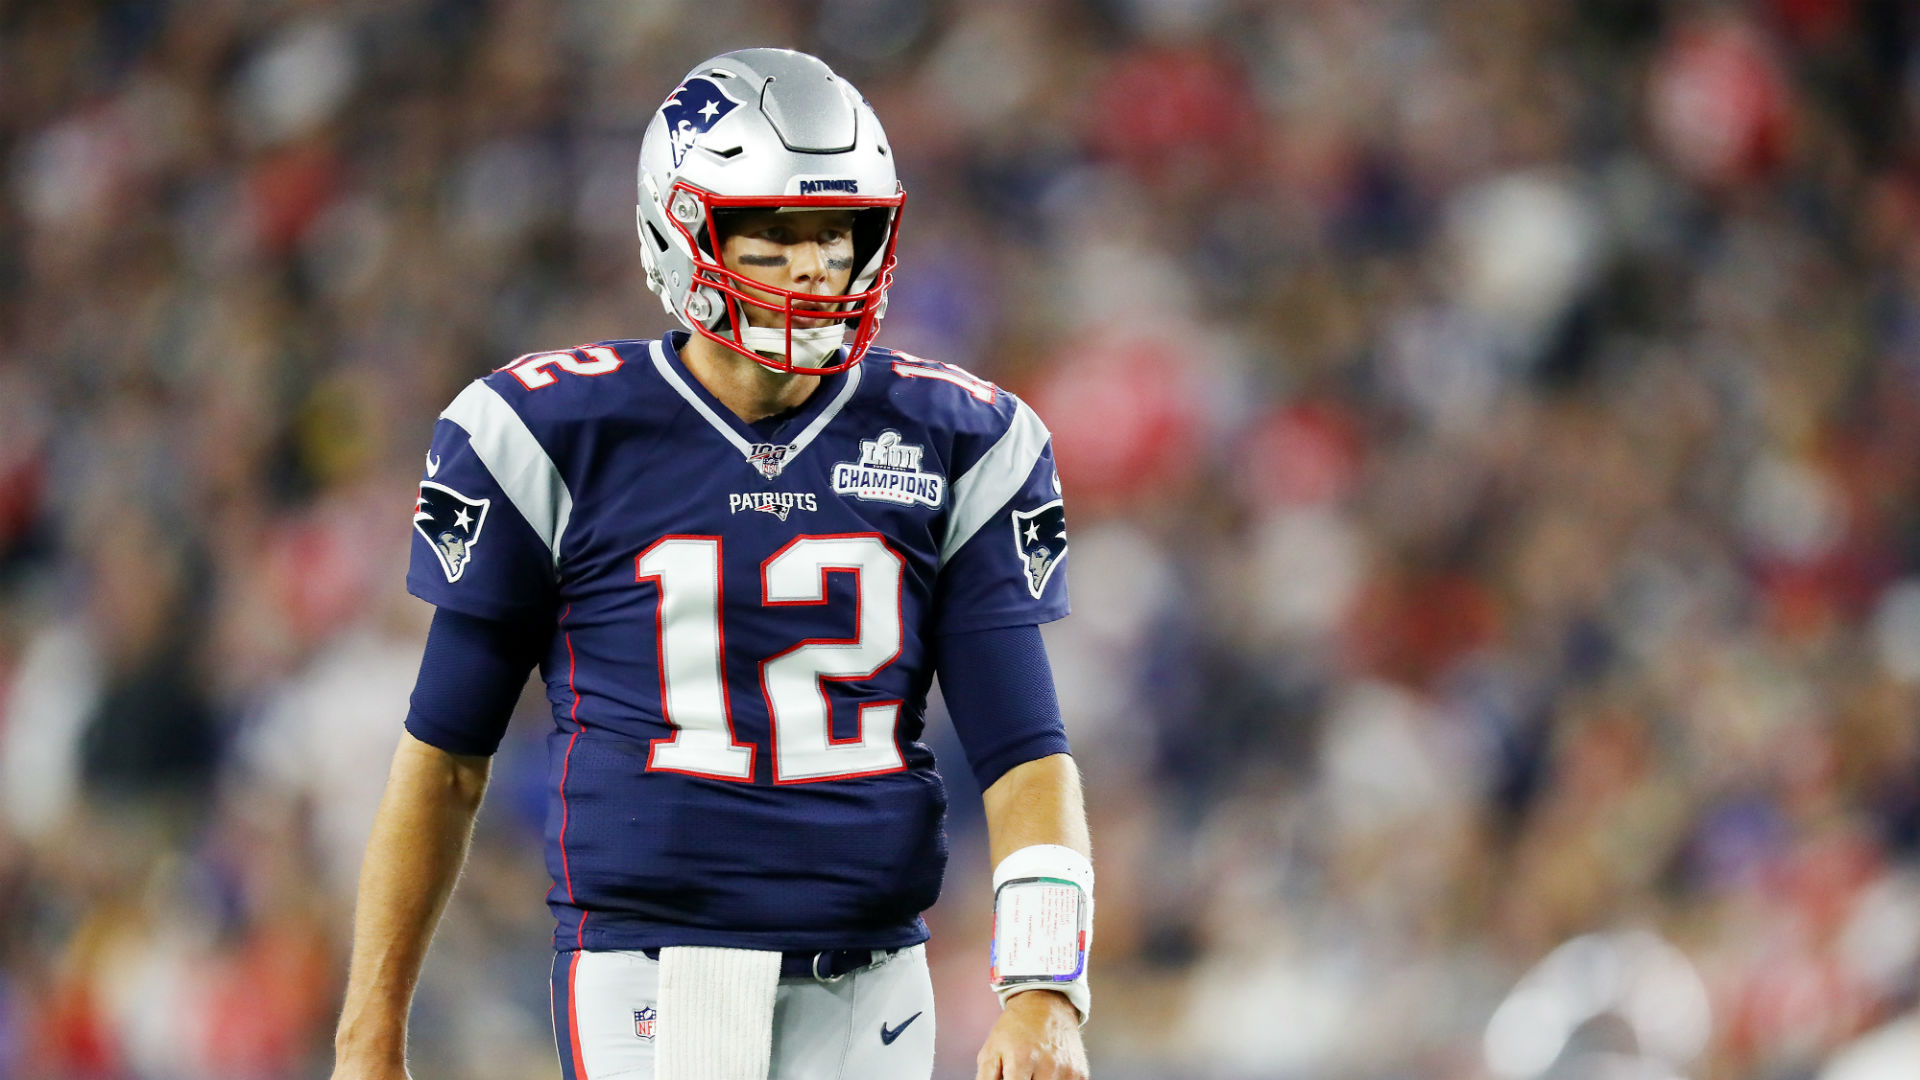 Tom Brady injury update: Patriots star (calf) limited practice participant